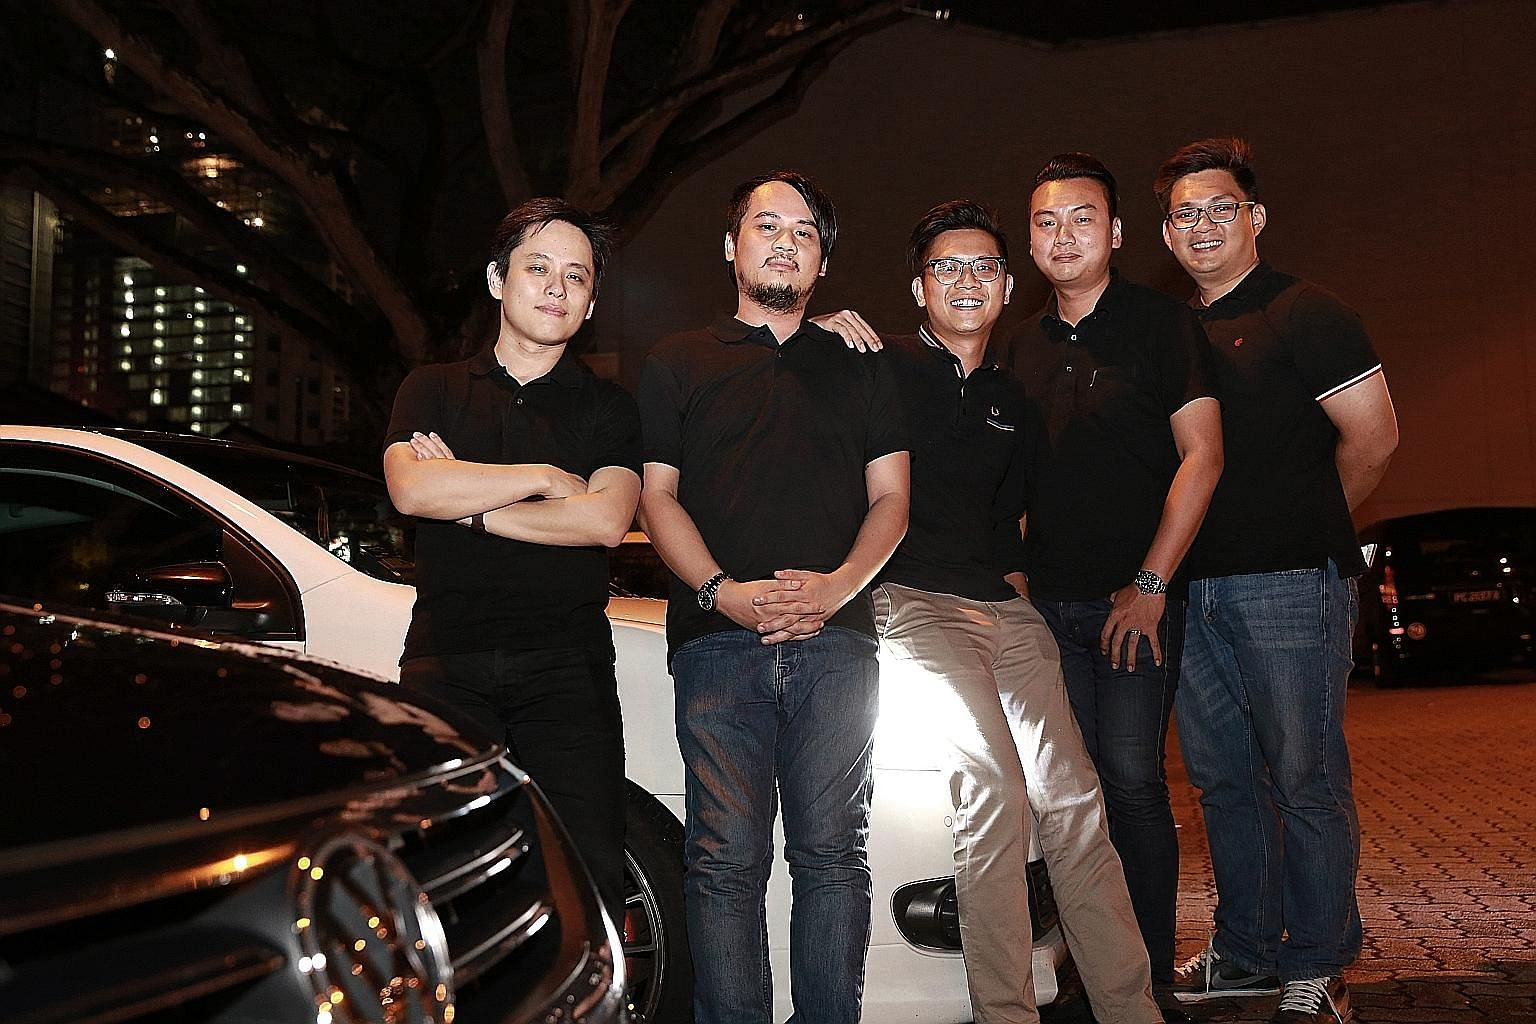 The Jocky team is made up of (from far left): head of design Roy Ho, 32; chief technical officer Adrian Tee, 33; CEO Bernard Lim, 31; head of partnerships Louis Kok, 29; and head of operations Tommy Tan, 30. The start-up has created a mobile app for